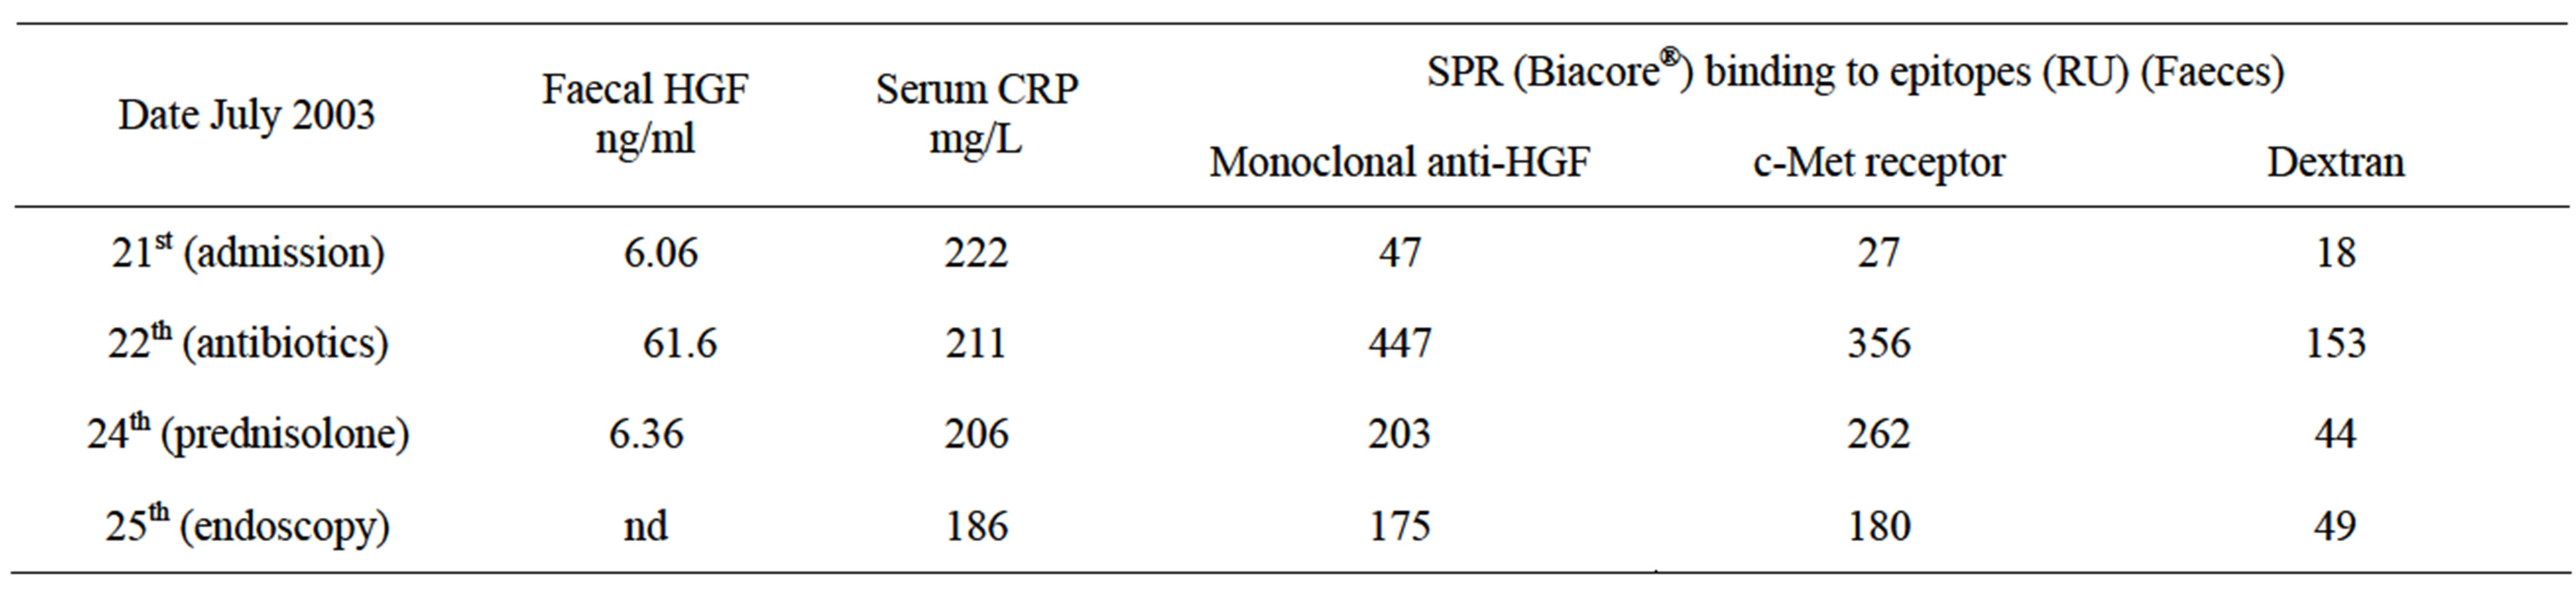 serum hepatocyte growth factor s hgf in diagnosis of spns Clinical significance of serum hepatocyte growth factor (hgf) levels in  hepatocellular  hepatocellular carcinoma (hcc) is the commonest primary   despite serum hgf levels were found diagnostic value, serum hgf levels.